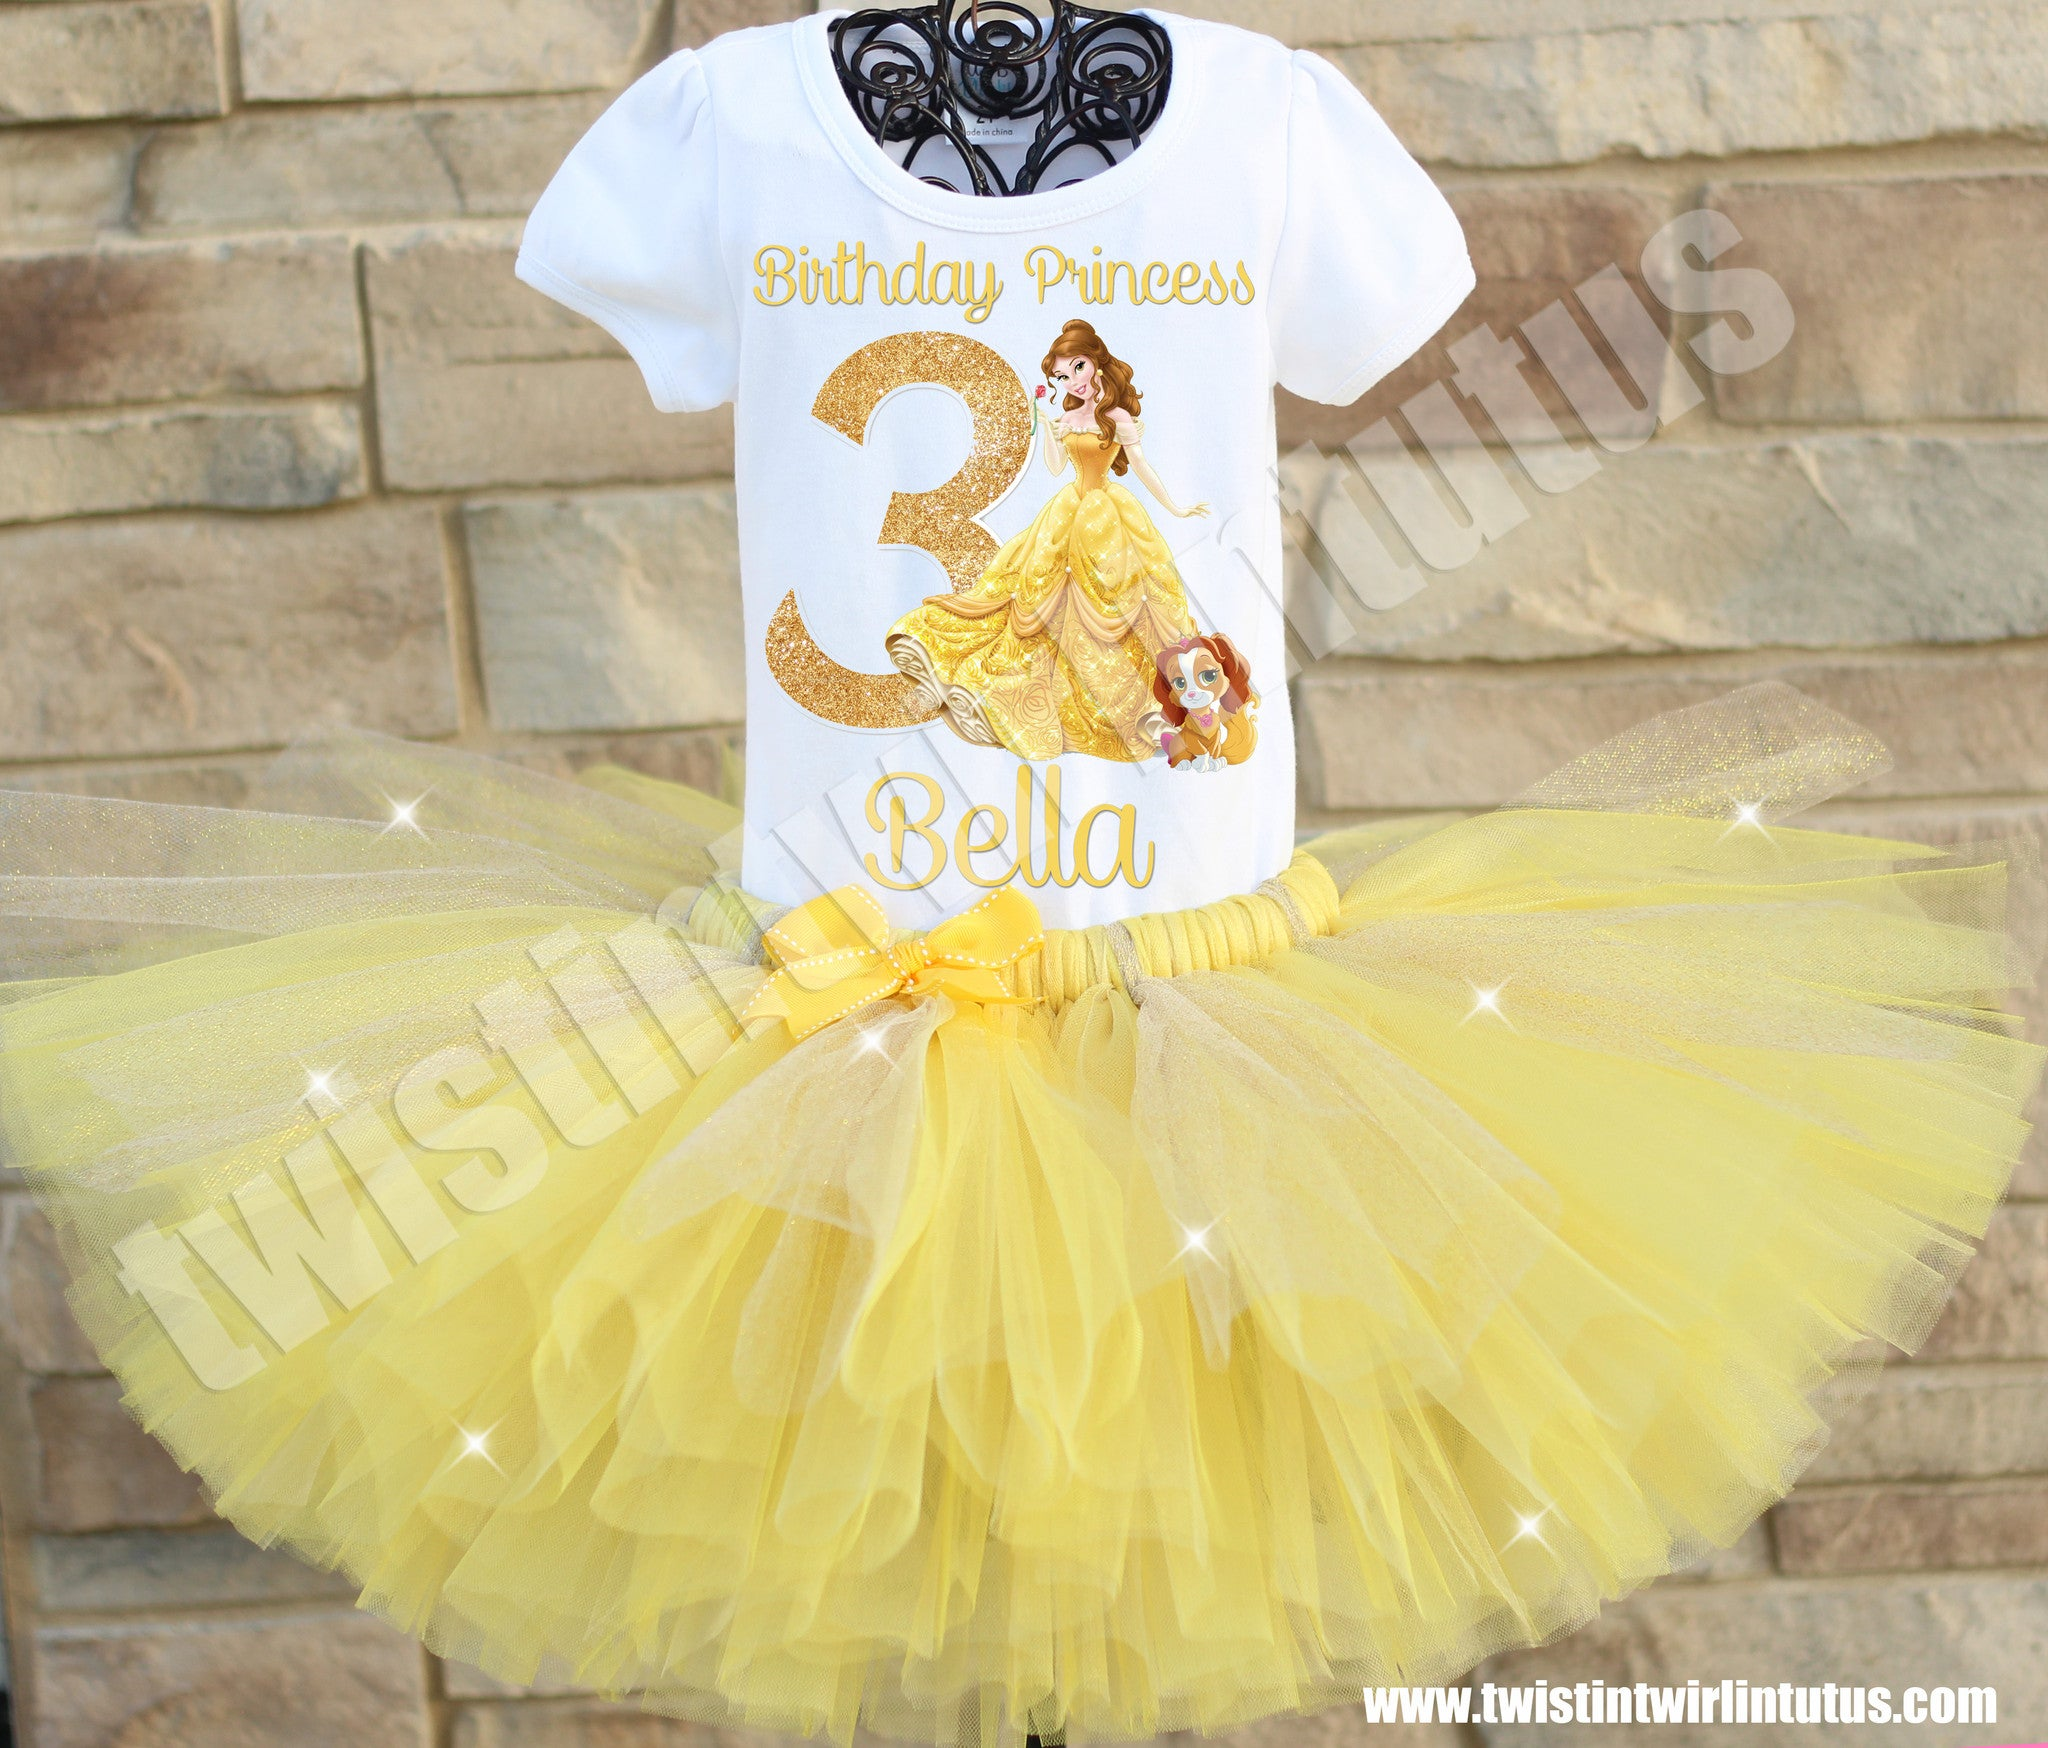 Princess Belle Birthday Tutu outfit